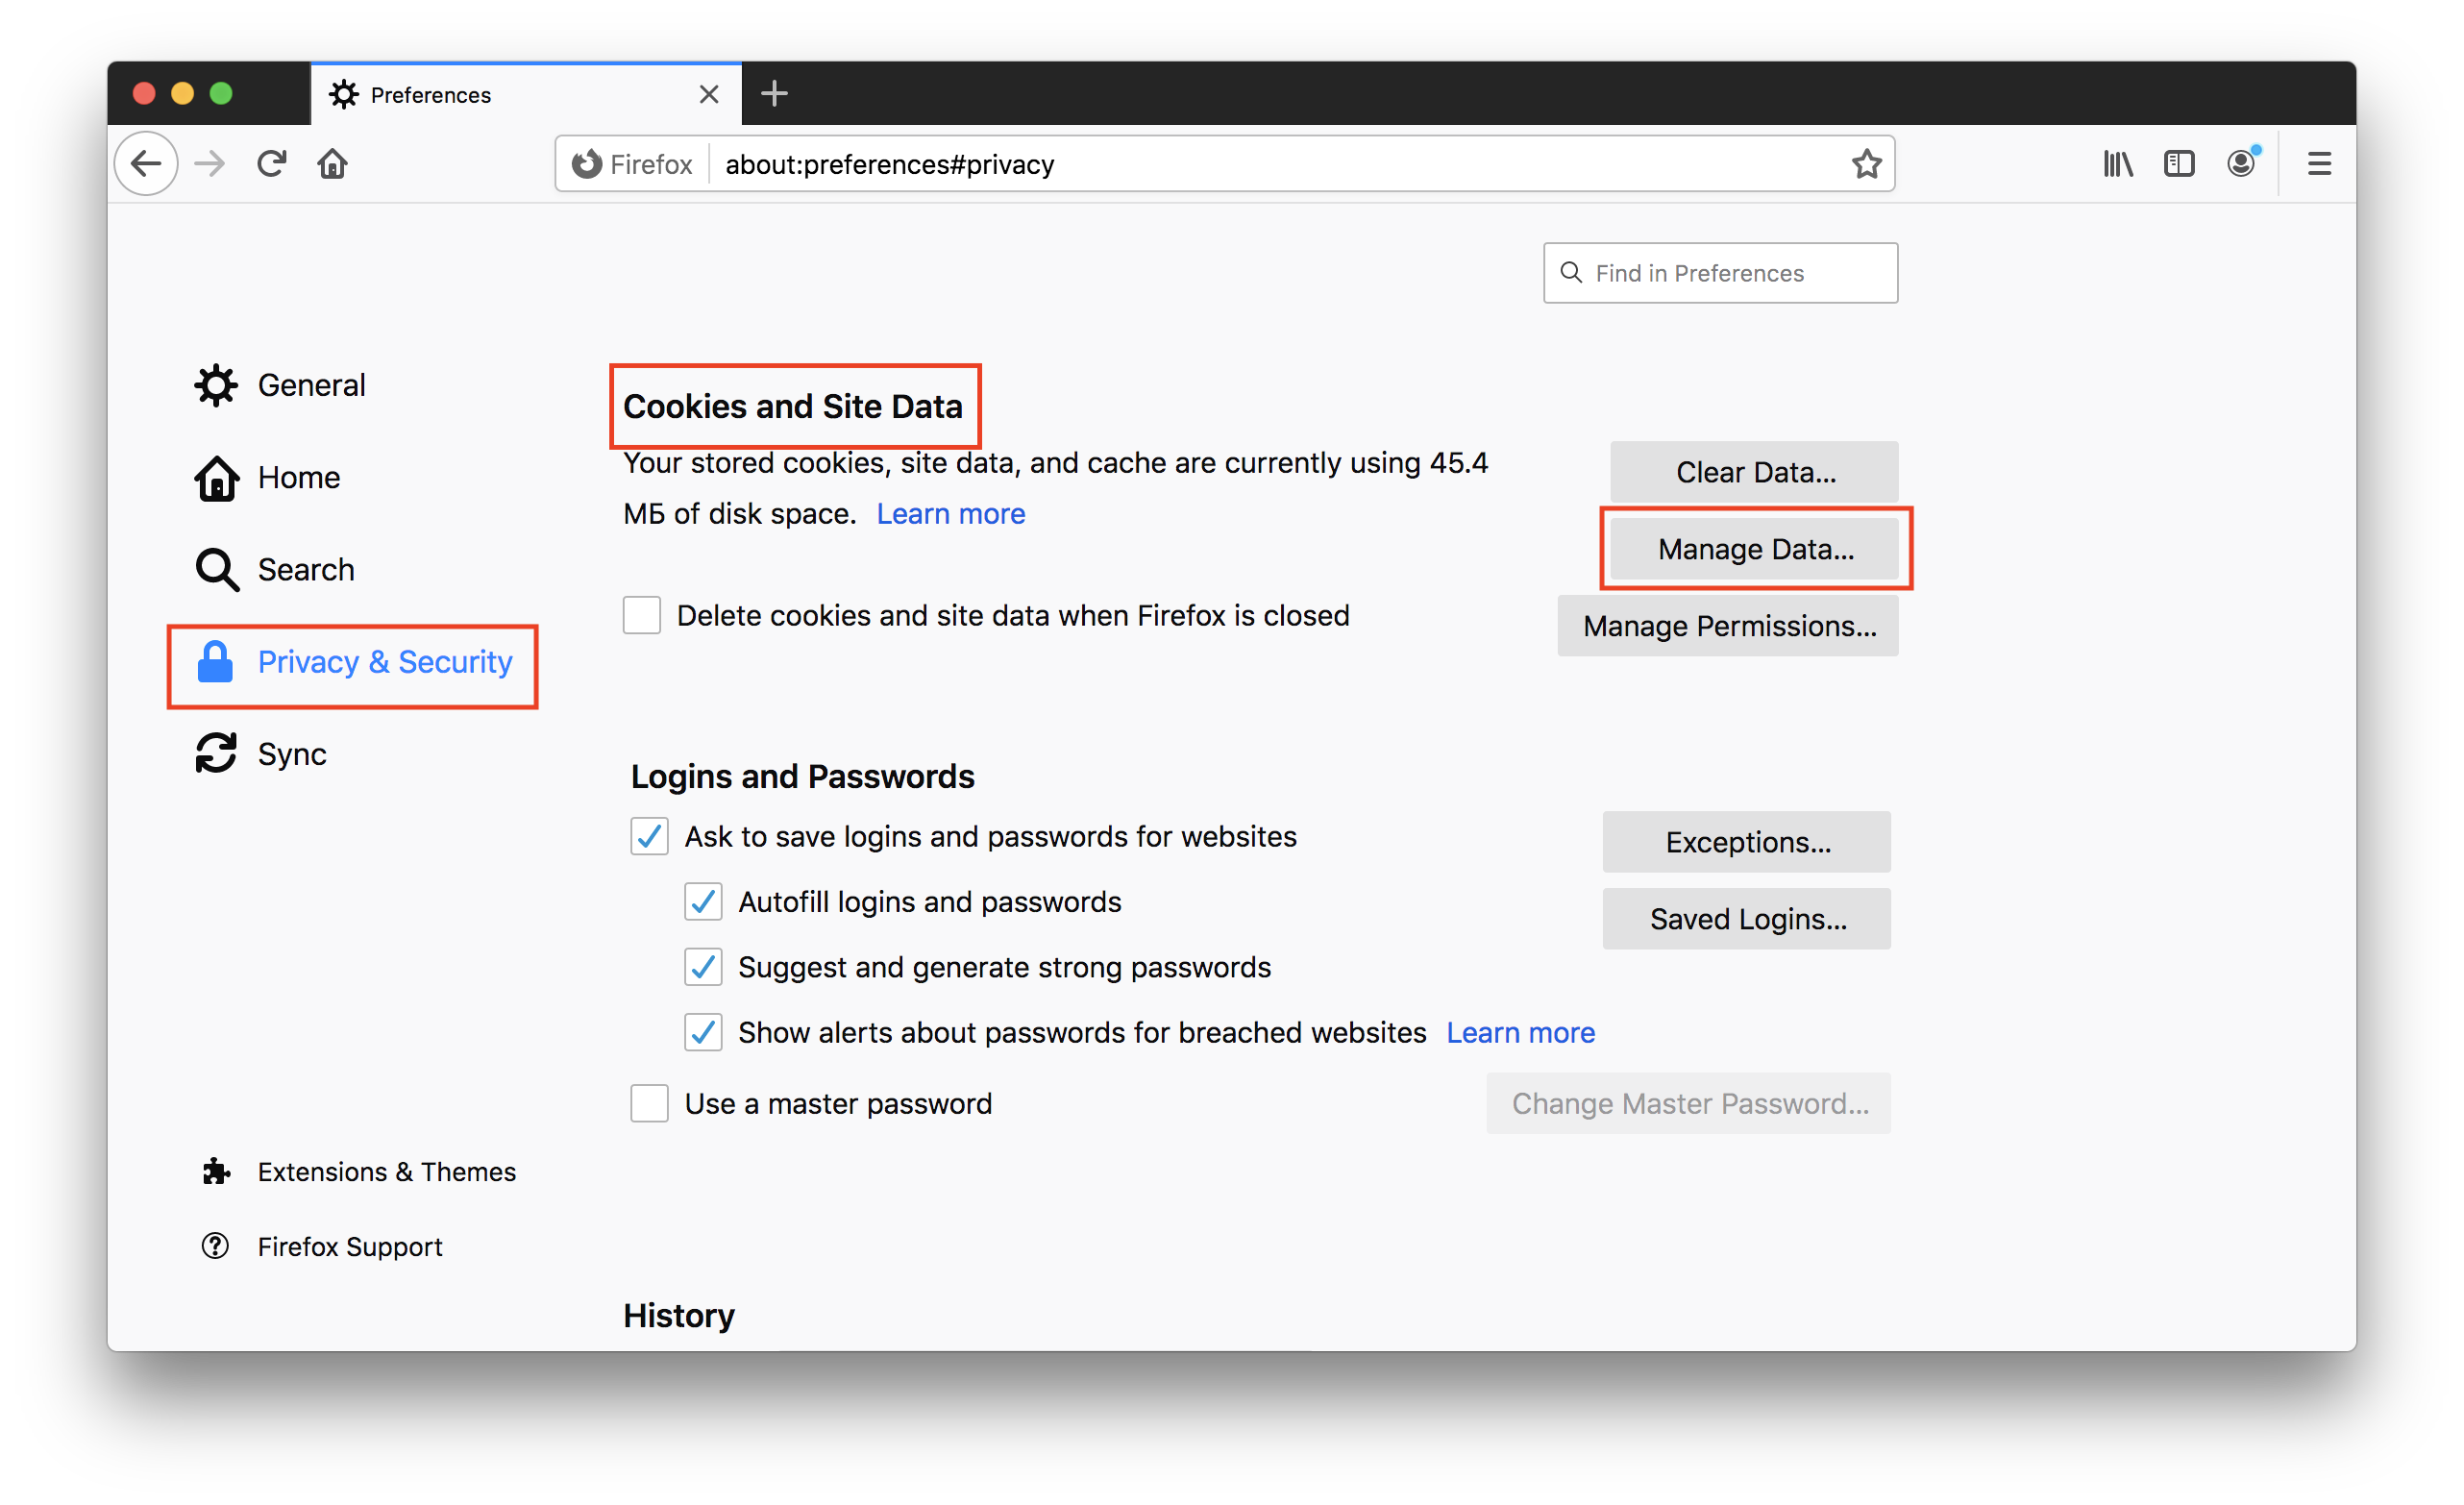 Cookies and Site Data in Firefox preferences window